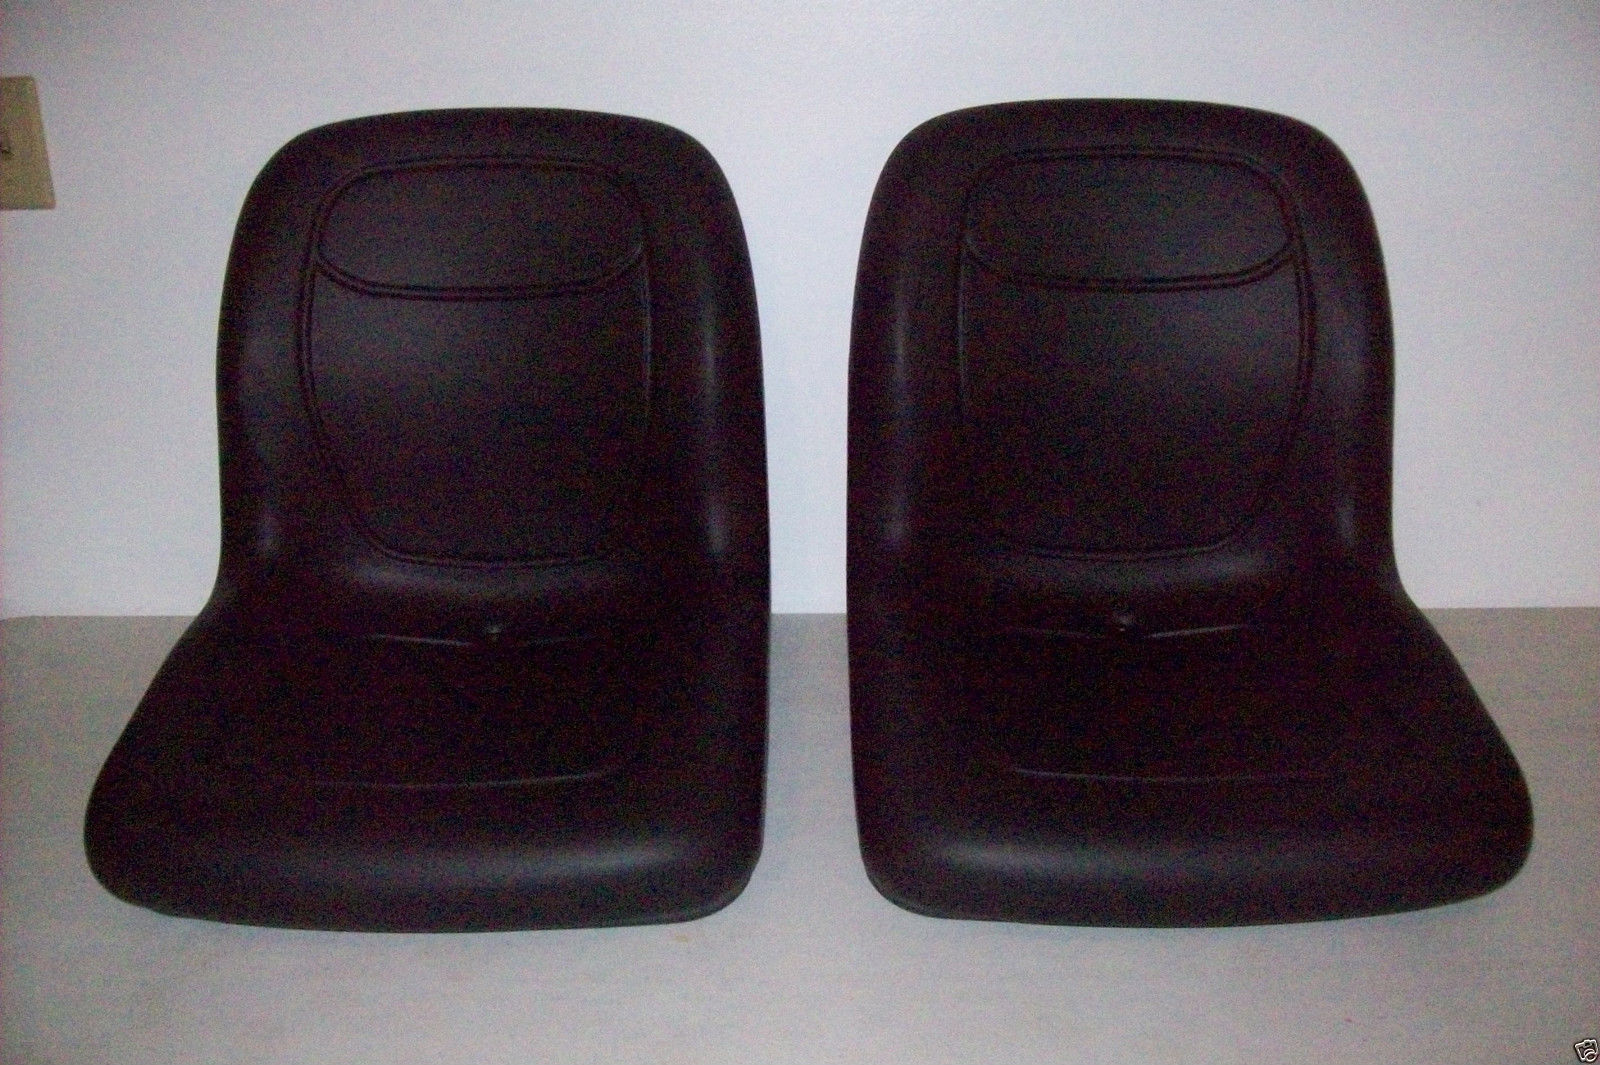 TWO-2-HIGH-BACK-BLACK-SEATS-FOR-ARCTIC-CAT-PROWLER-REPLACES-OEM-1506-925-MM-151888805615